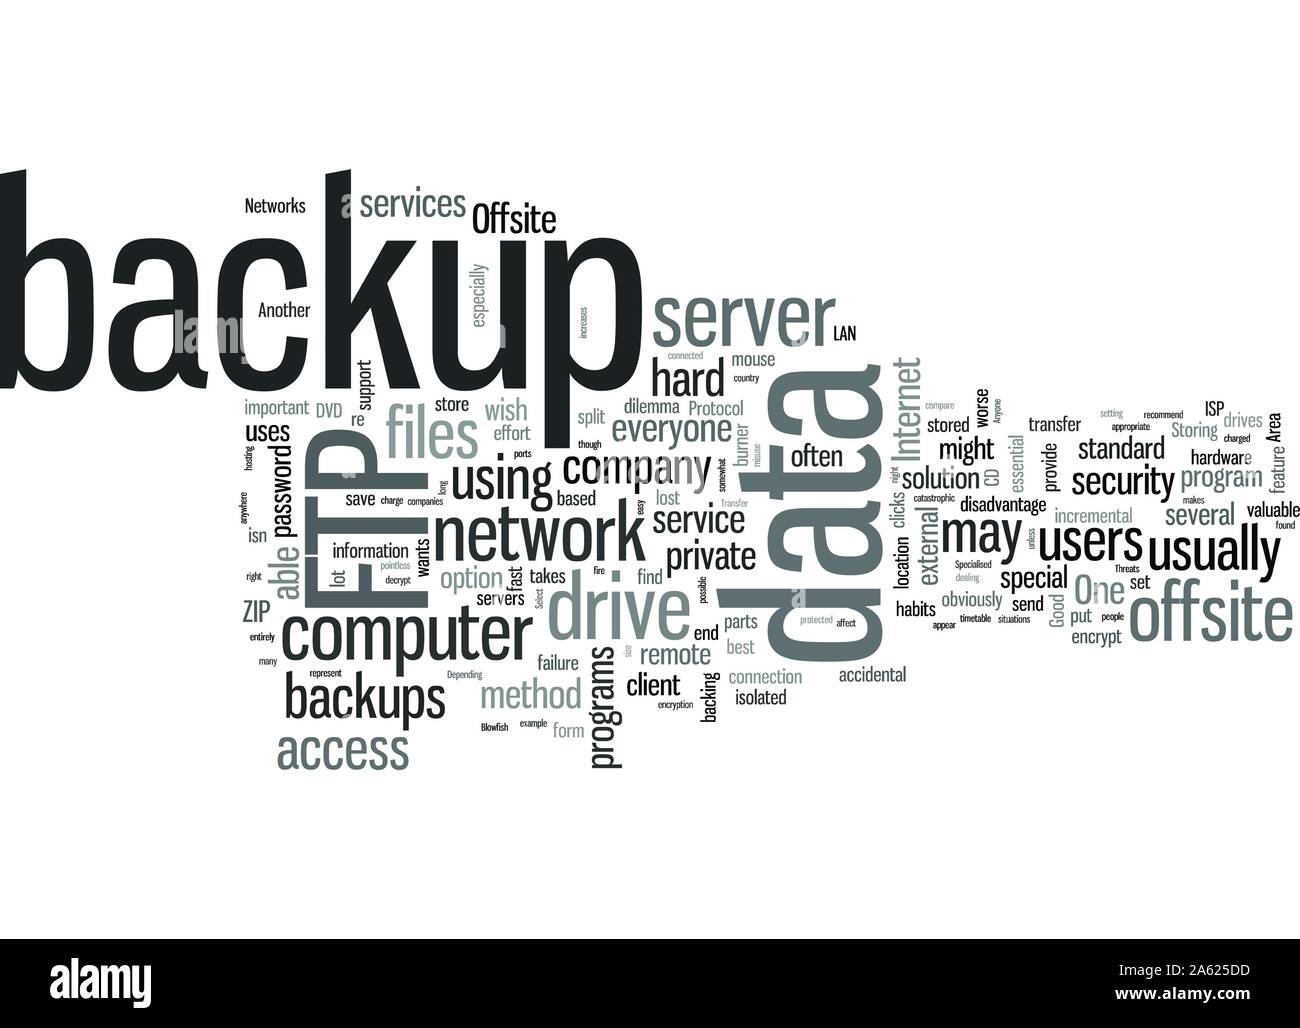 Offsite Backup Benefits And Threats Unveiled Stock Vector